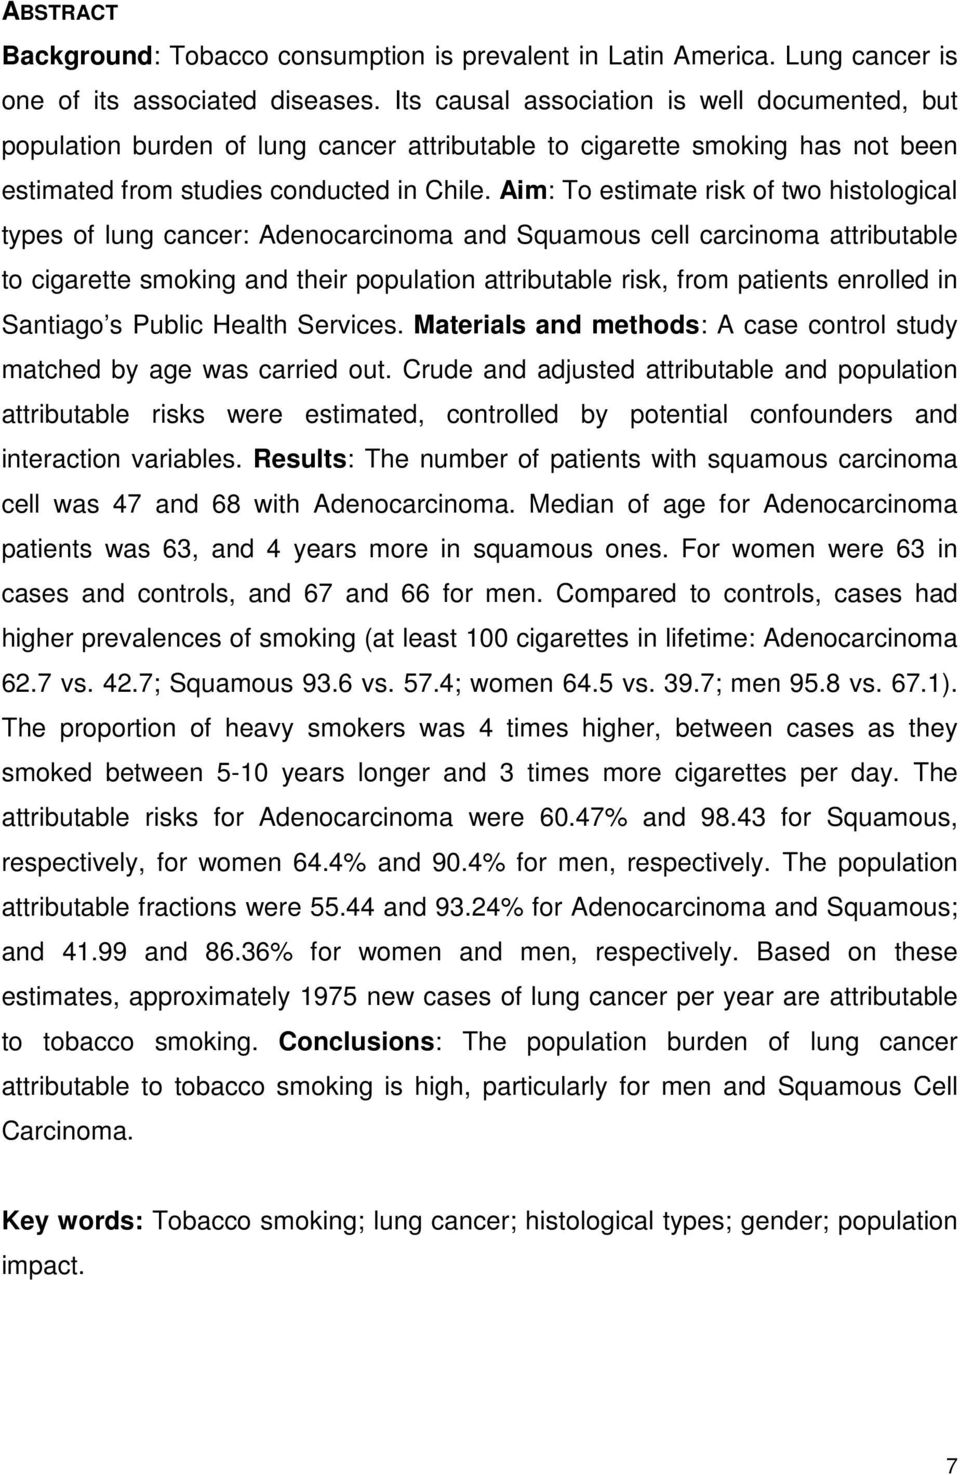 Aim: To estimate risk of two histological types of lung cancer: Adenocarcinoma and Squamous cell carcinoma attributable to cigarette smoking and their population attributable risk, from patients